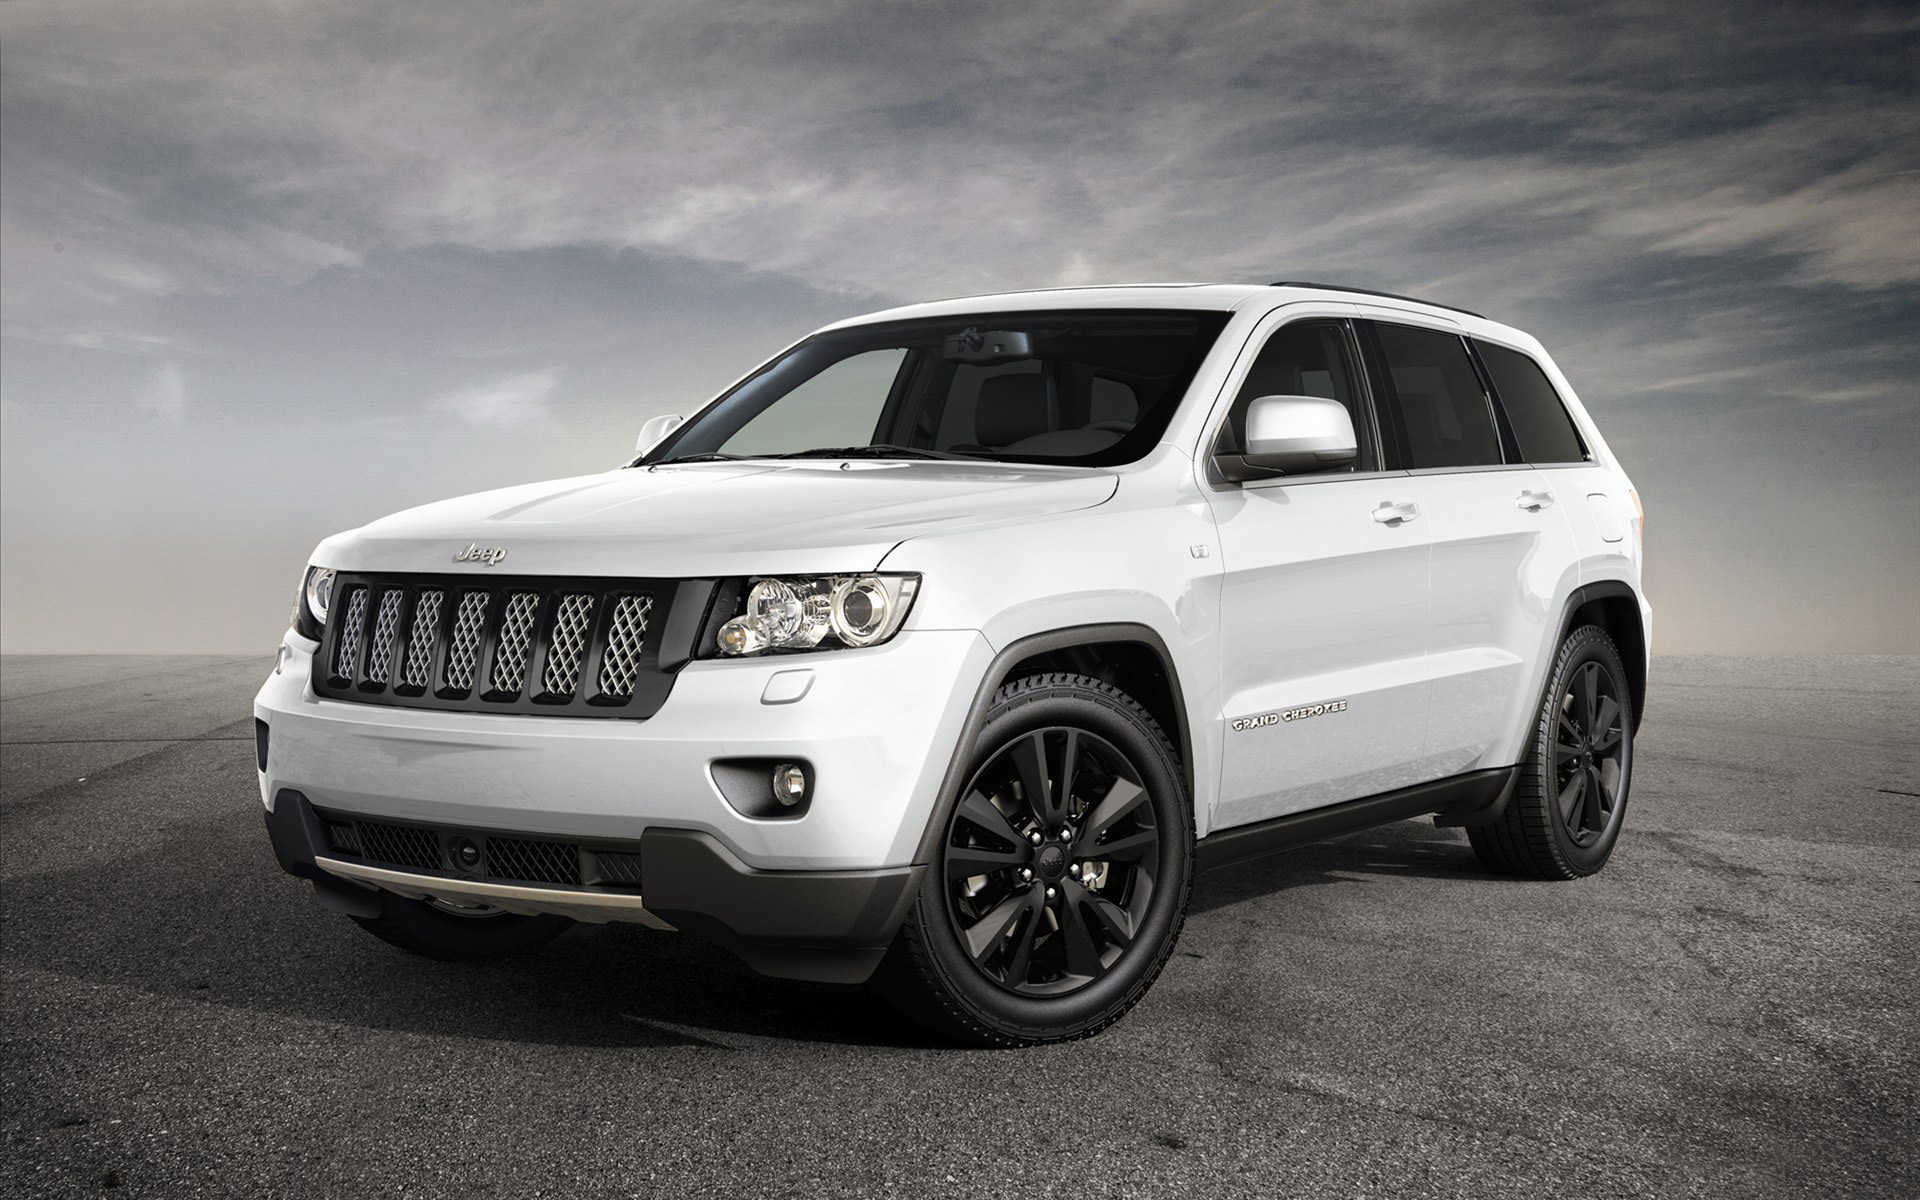 2012 jeep grand cherokee wallpaper hd car wallpapers id 2497. Black Bedroom Furniture Sets. Home Design Ideas